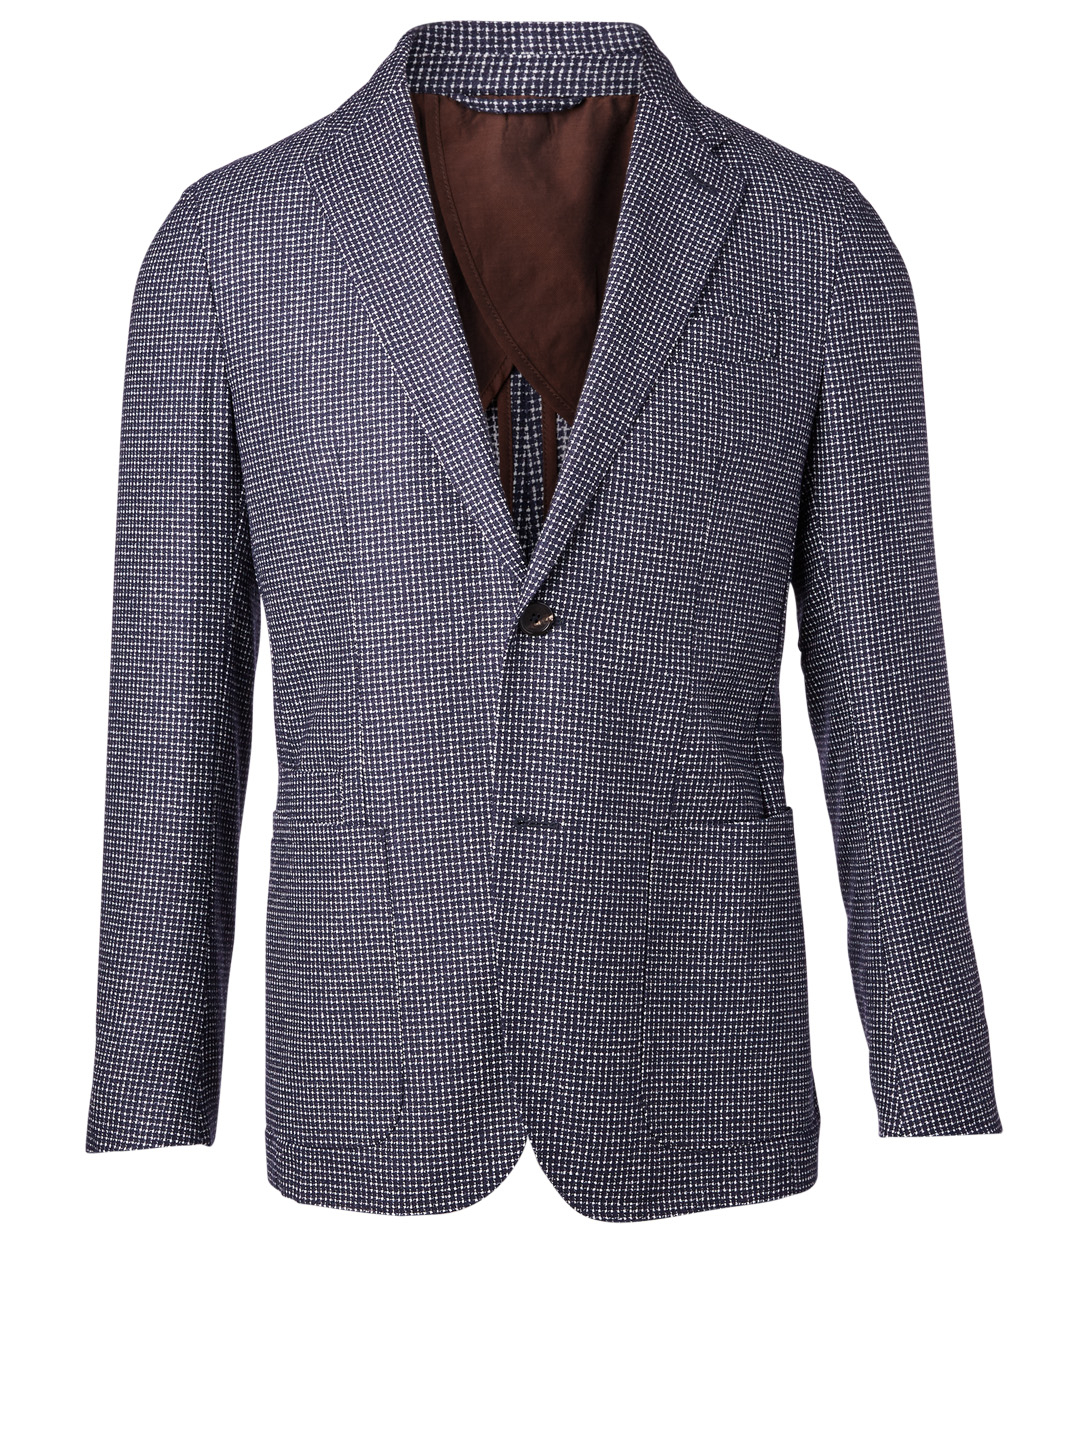 ERMENEGILDO ZEGNA Jacket In Check Men's Blue